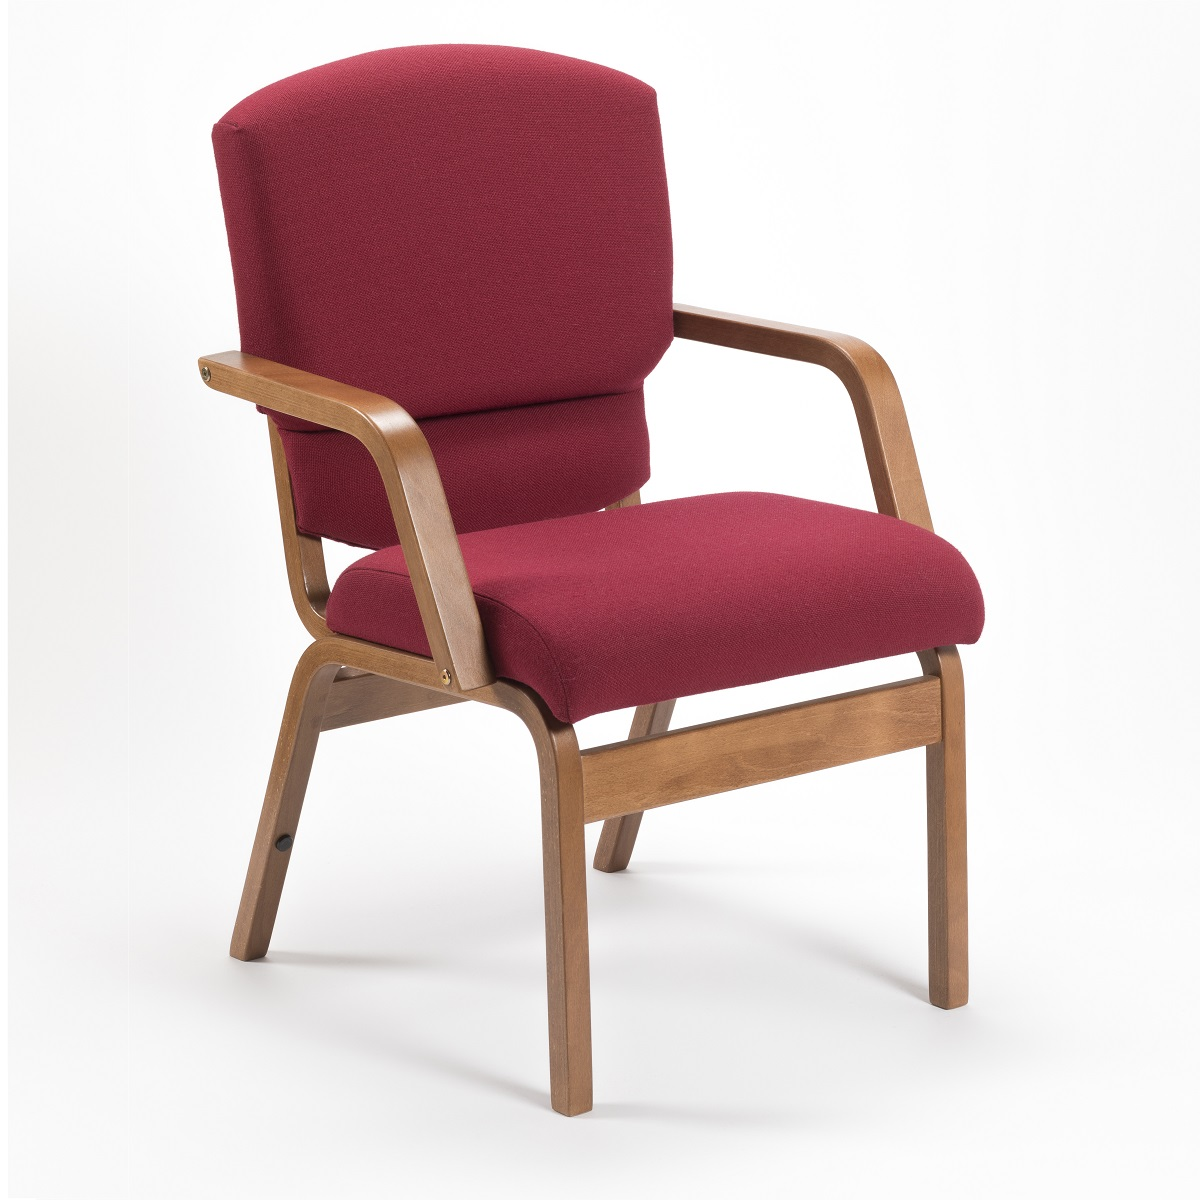 Comfortable Wooden Stacking Upholstered Bench Chair